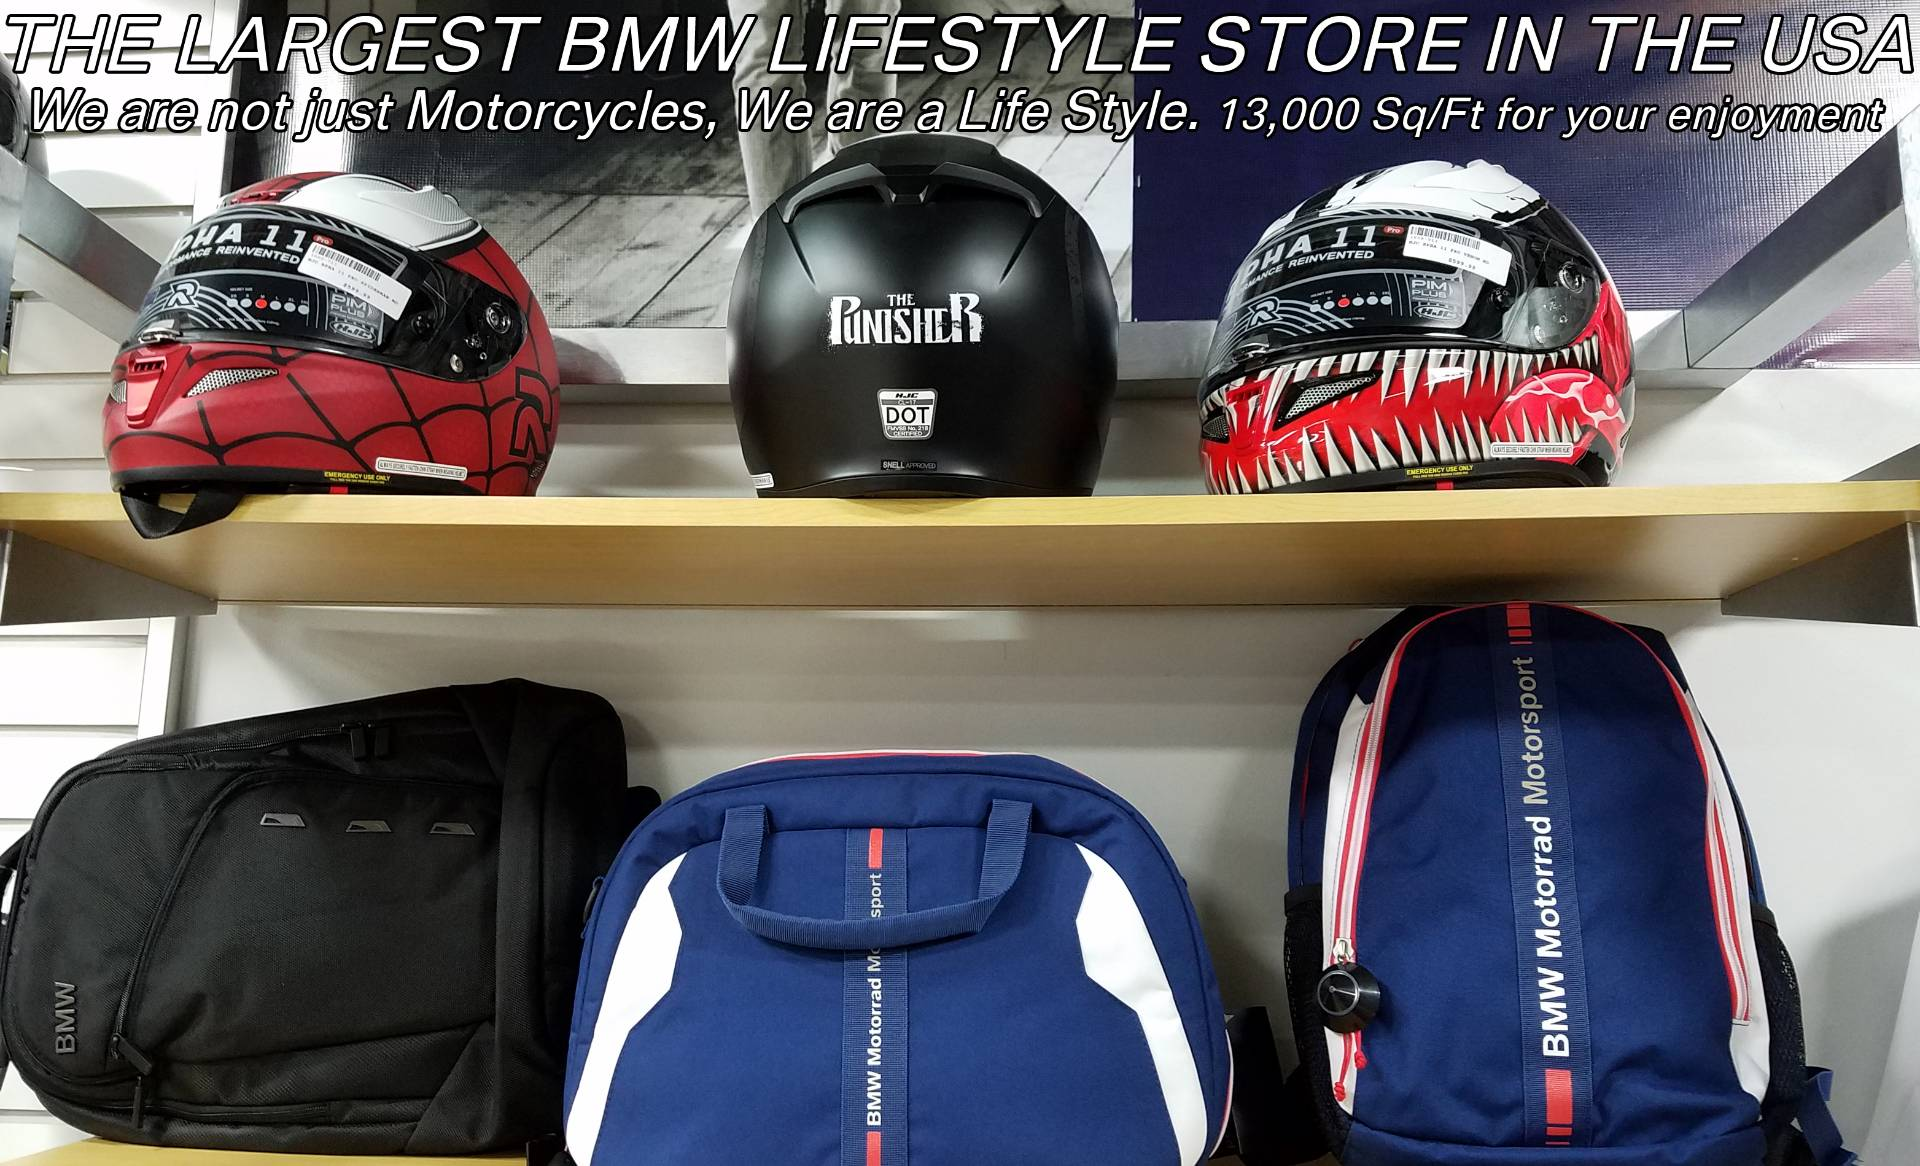 New 2019 BMW R 1250 GS for sale, New BMW R 1250GS, BMW R1250GS for sale, 1250GS, R1250GS, BMW Motorcycles of Miami, Motorcycles of Miami. Motorcycles Miami - Photo 44